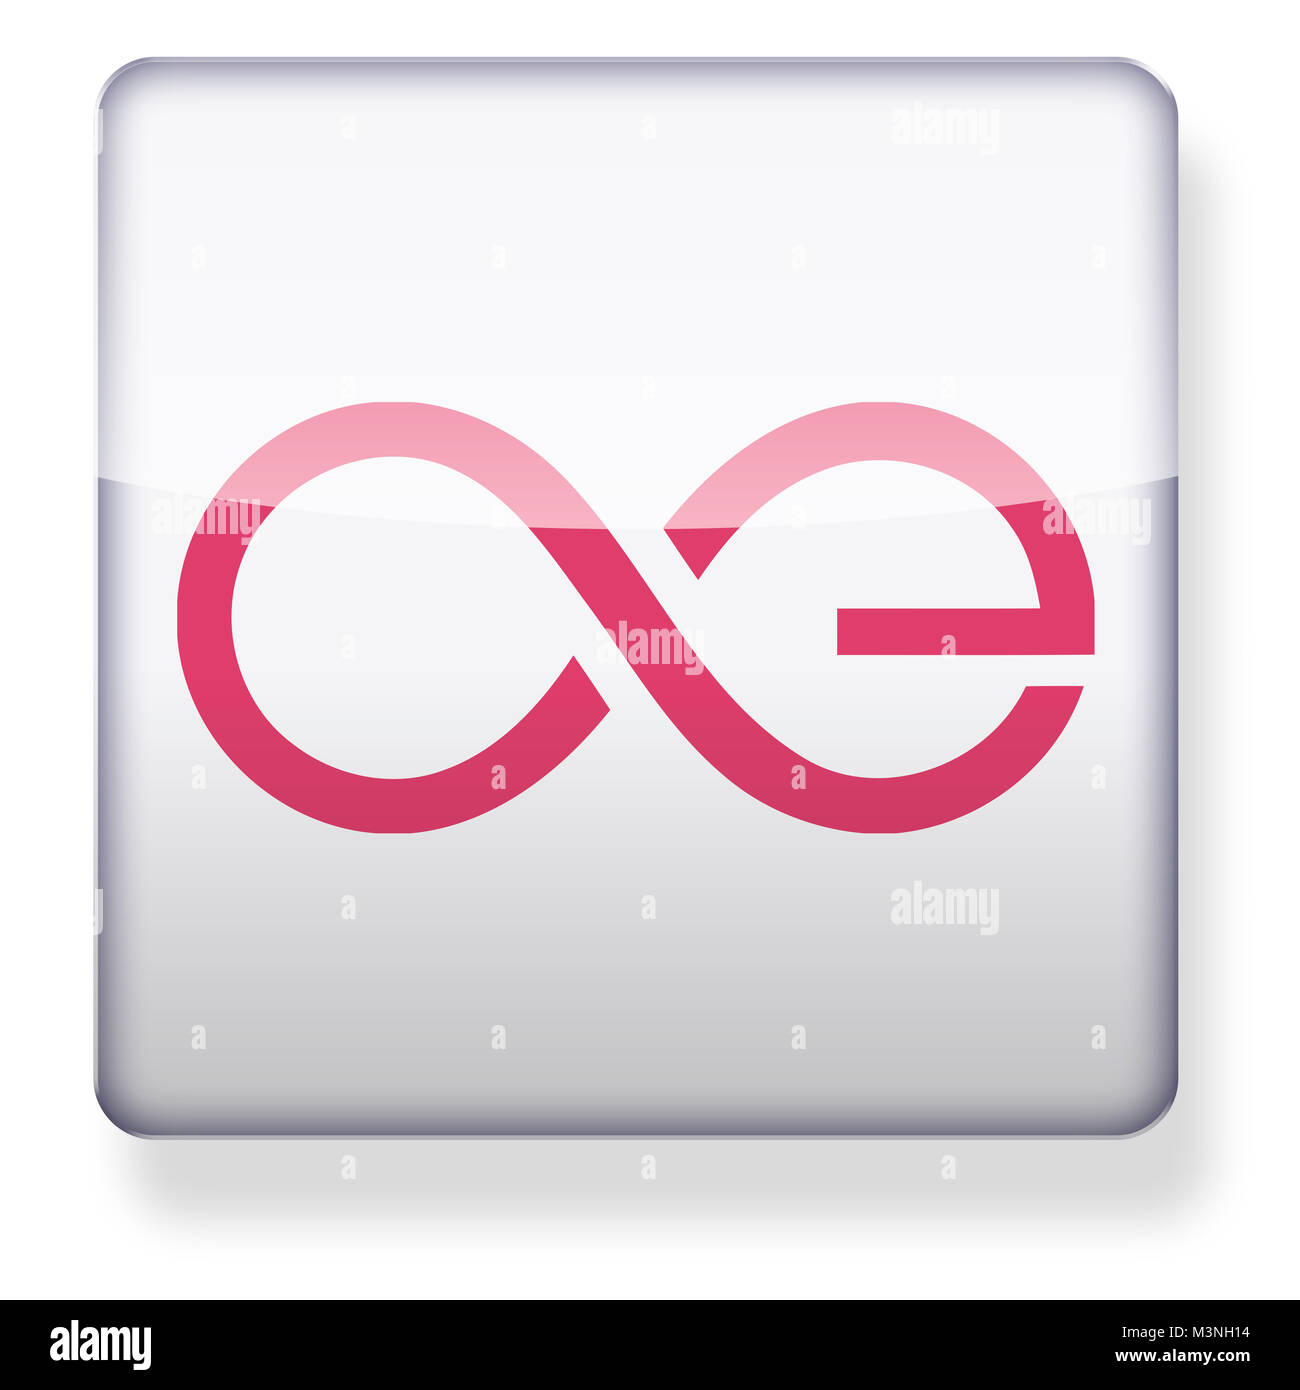 aeternity cryptocurrency AE logo as an app icon. Clipping path included. - Stock Image